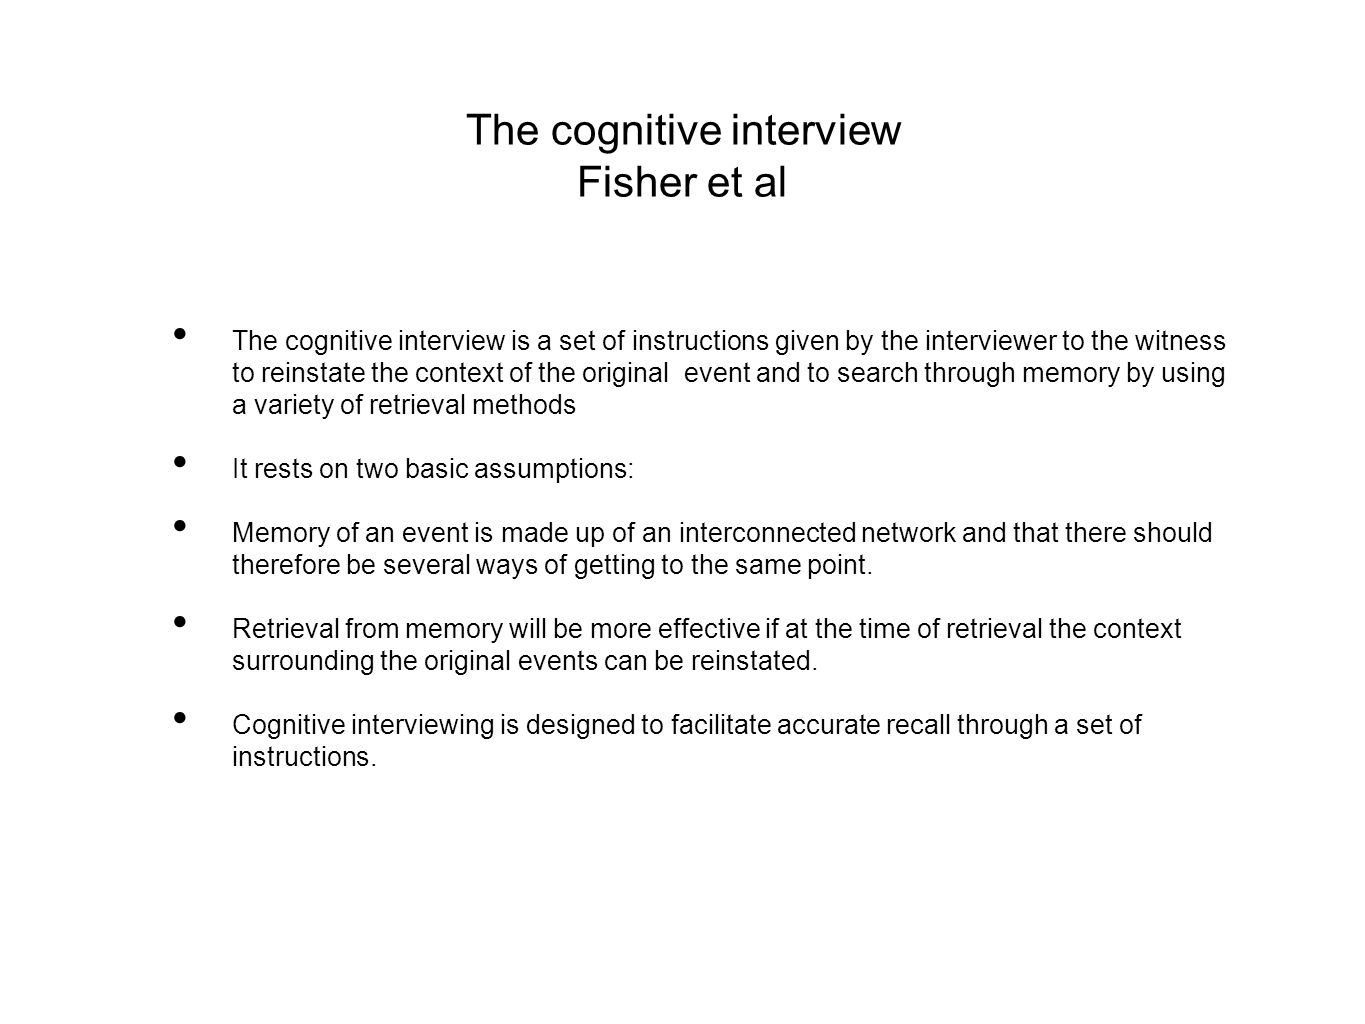 making a case interviewing witnesses making a case interviewing the cognitive interview fisher et al the cognitive interview is a set of instructions given by